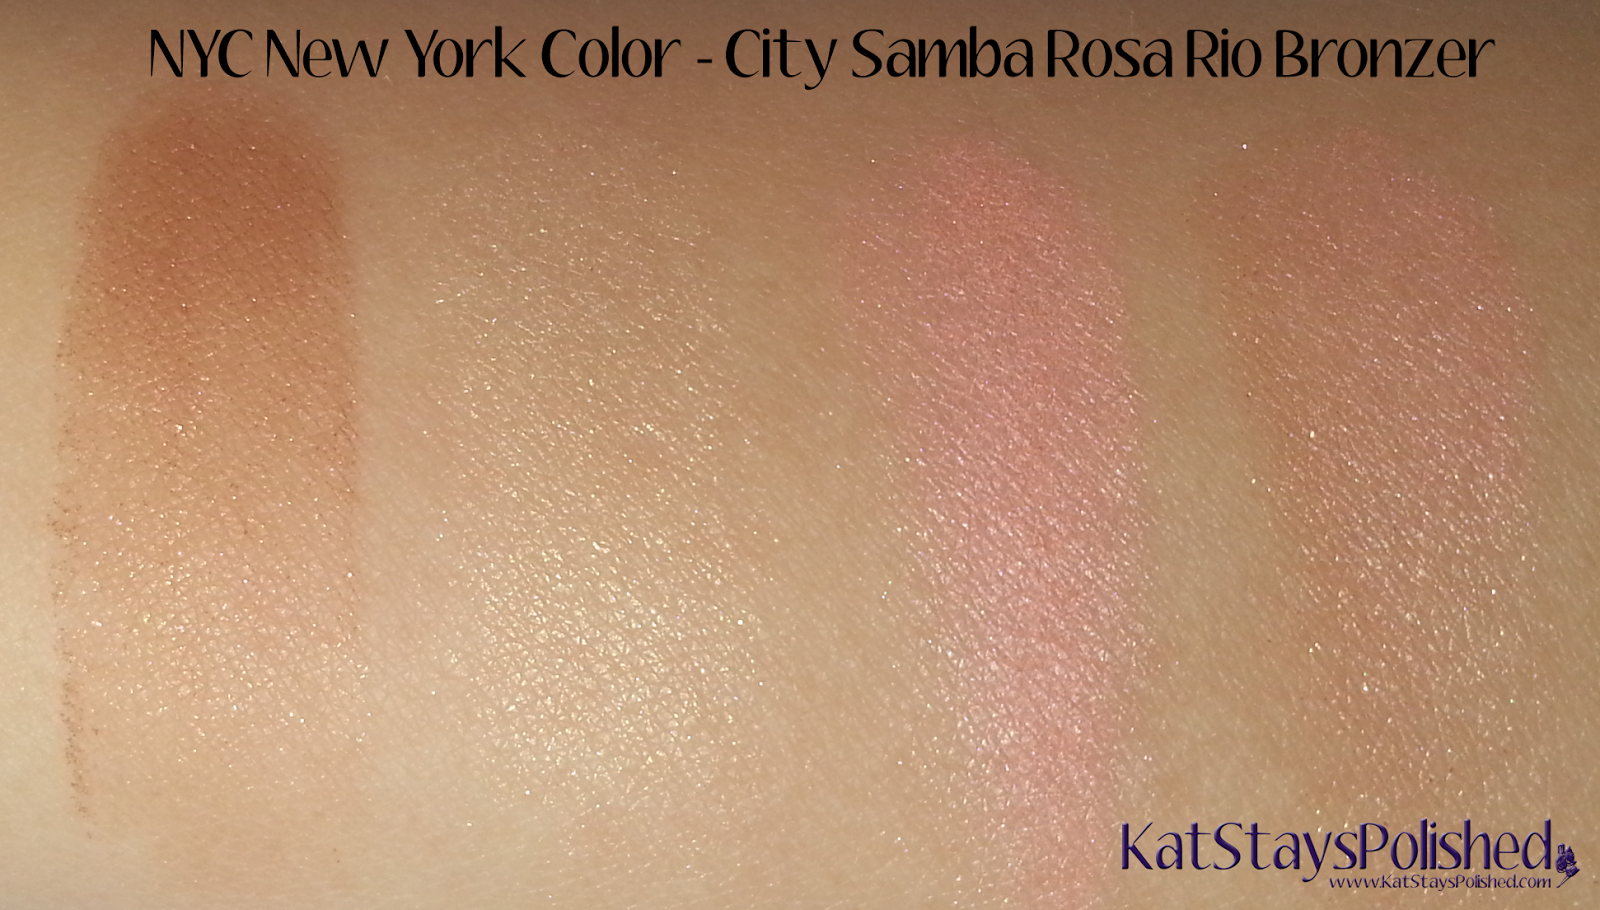 NYC New York Color - City Samba Sun 'n' Bronze - Rosa Rio Bronzer Swatches | Kat Stays Polished